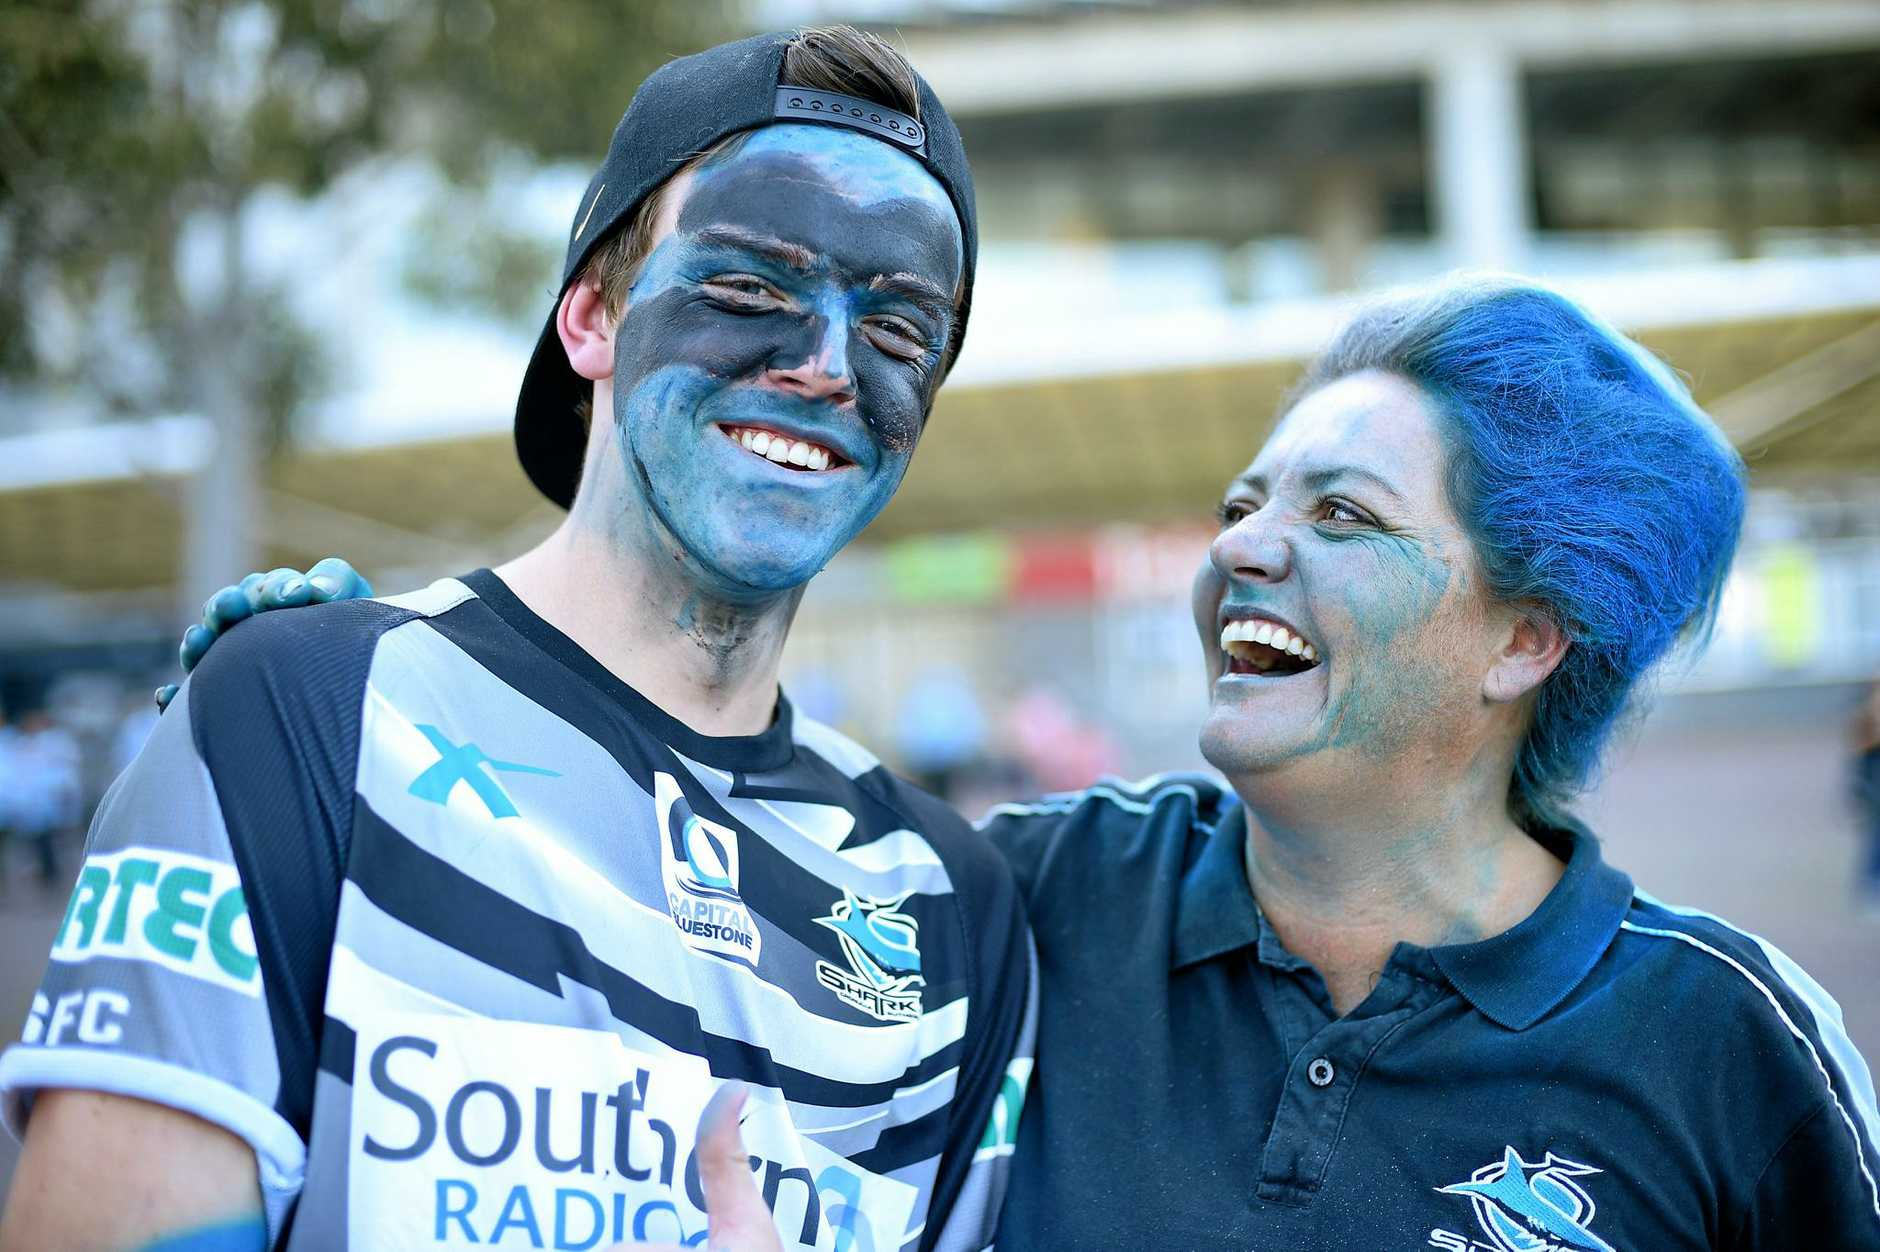 Sharks supporters ahead of the NRL grand final between the Melbourne Storm and the Cronulla Sharks at ANZ Stadium.